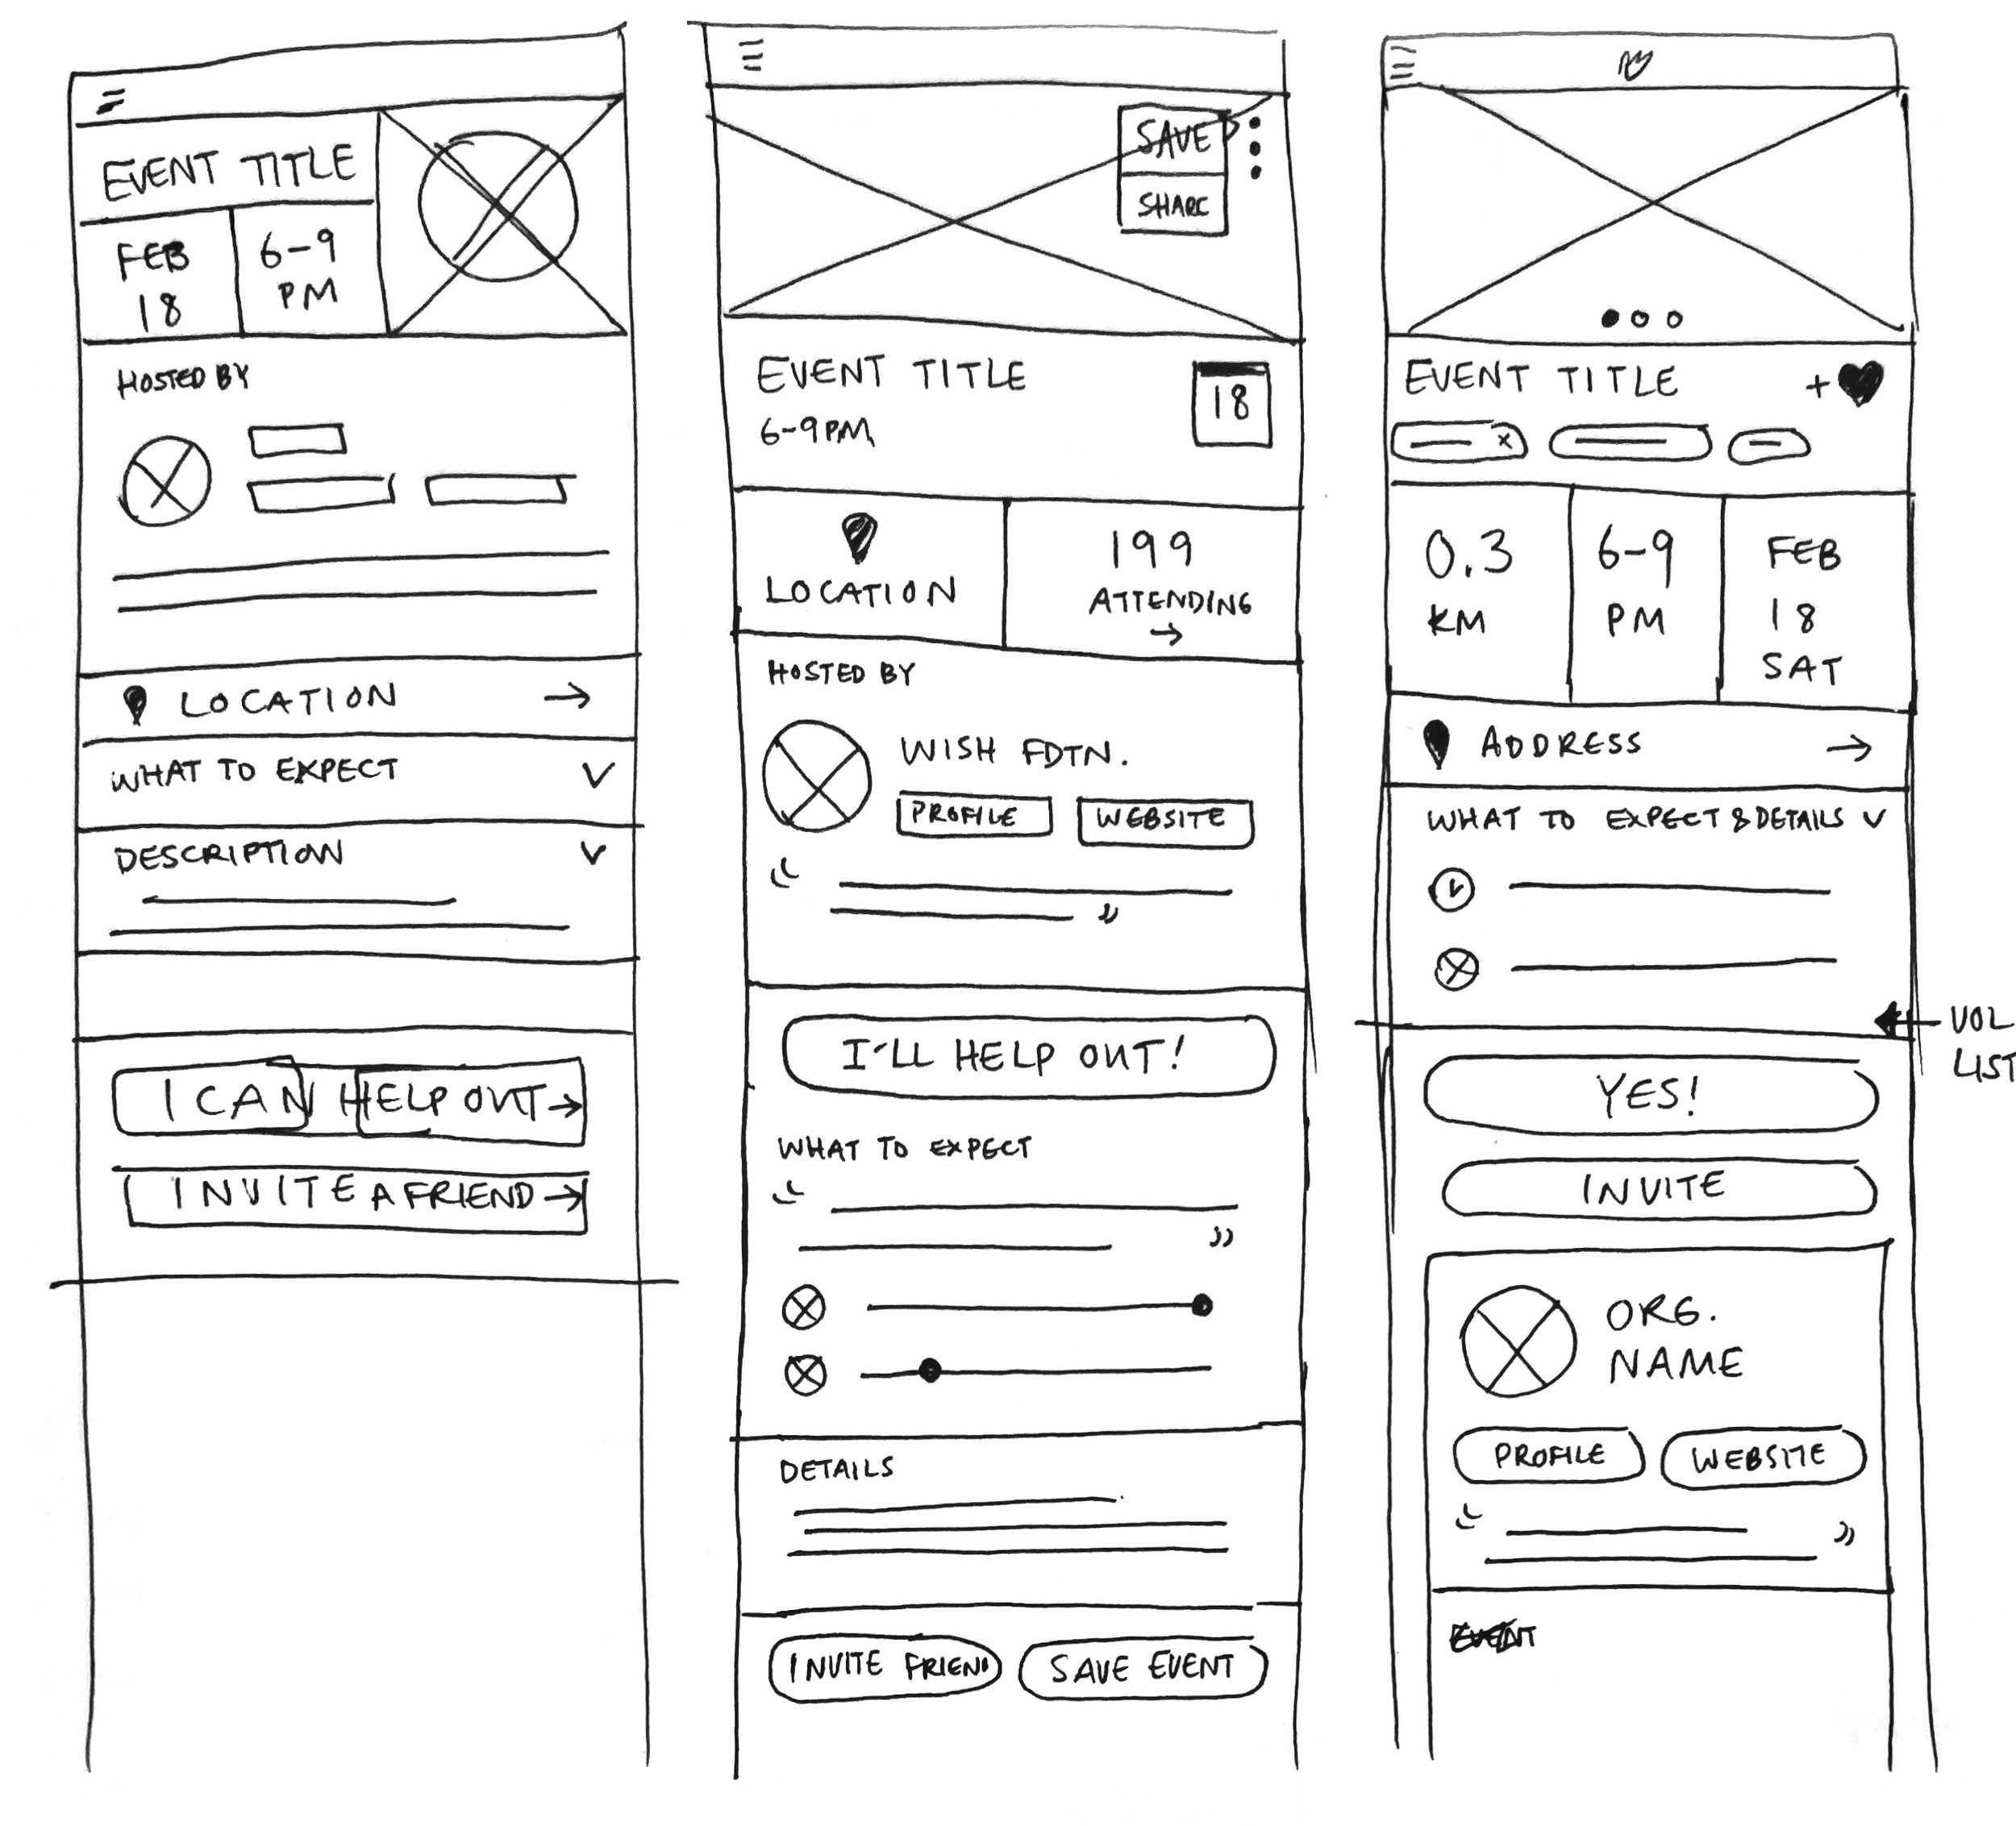 Figuring out a functional layout for the event details screen.